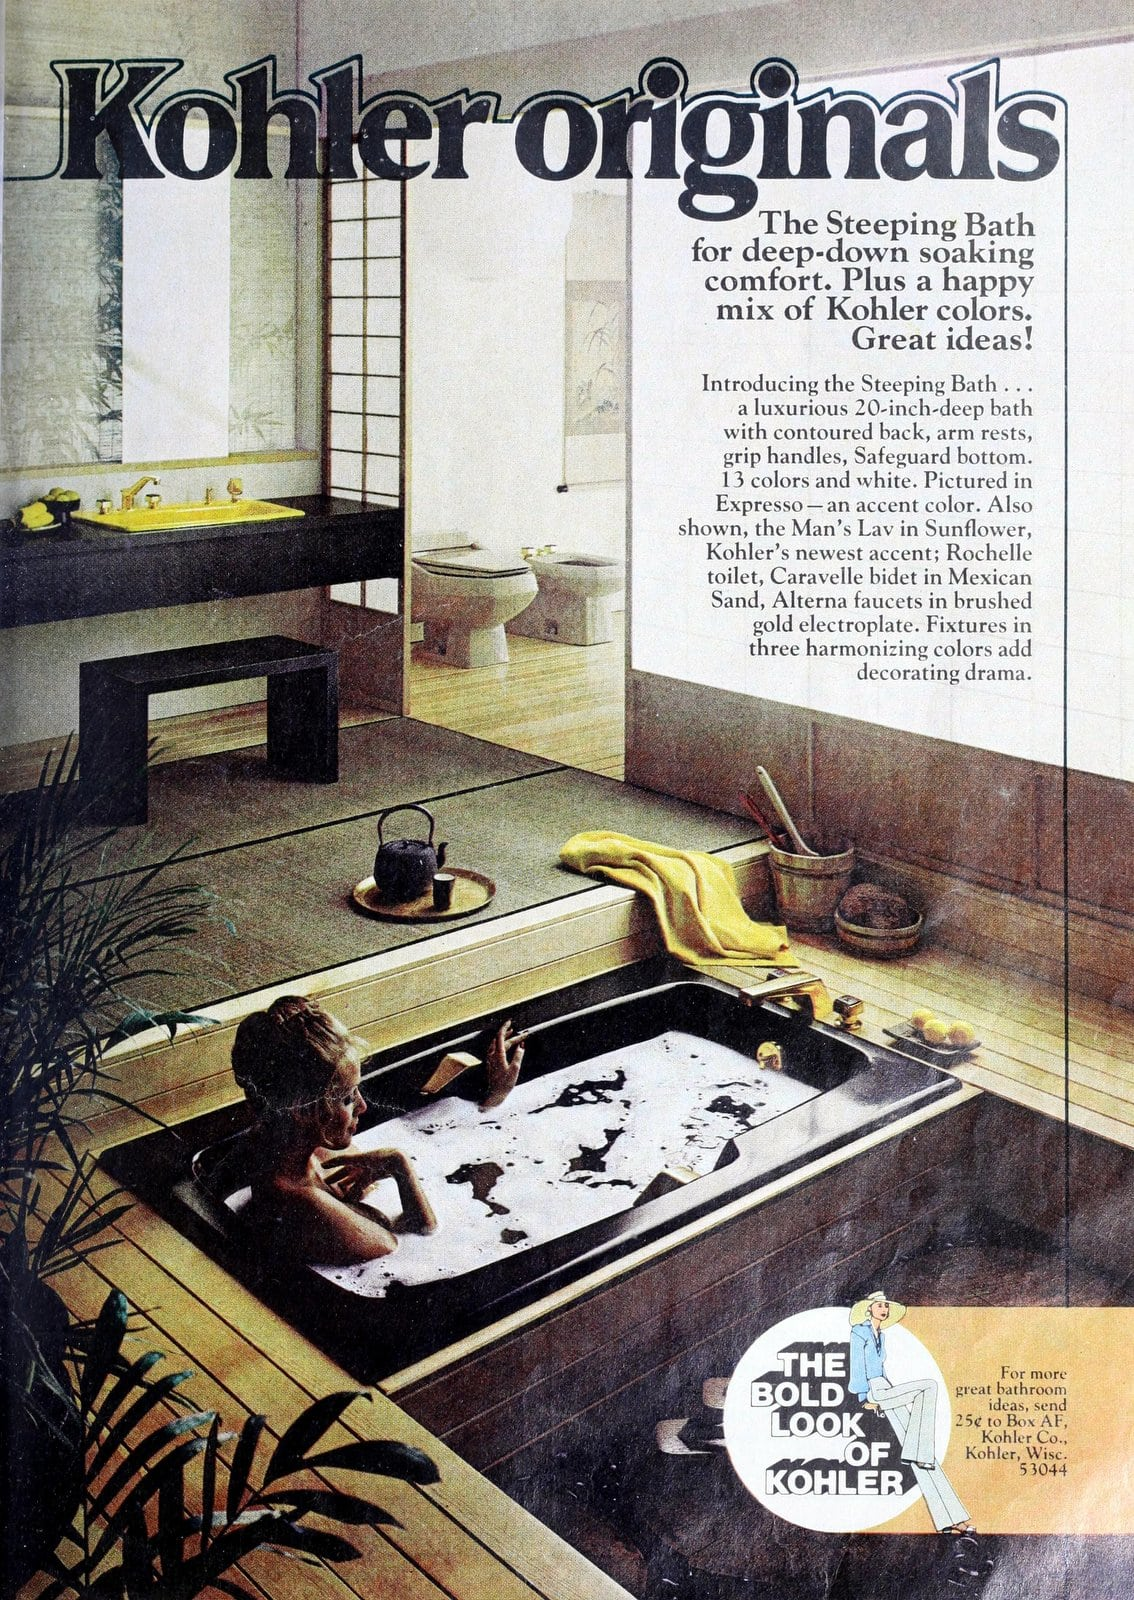 Earth-toned bathroom suite (1974)